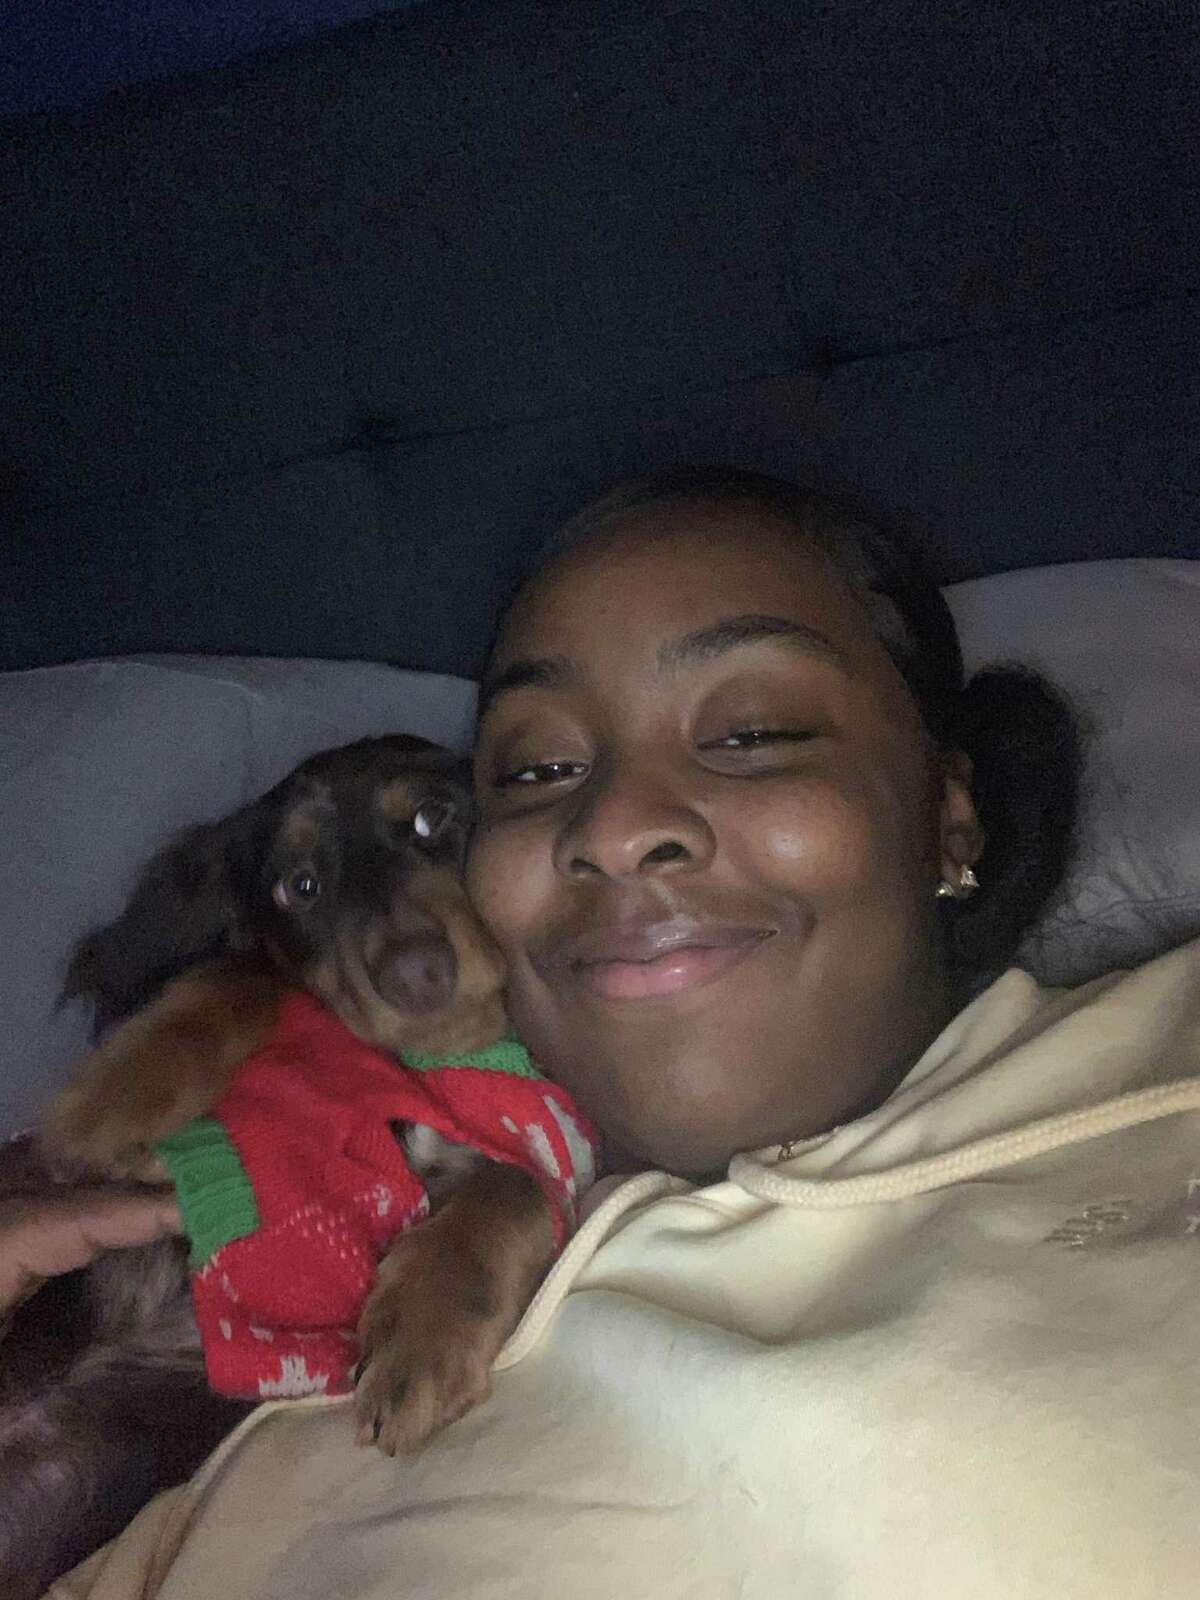 Nadayea Encarnacion seen pictured with her pet dachshund, Bodie, who she claims was unfairly seized by police in a crackdown on a dog-running scheme run out of Stamford.